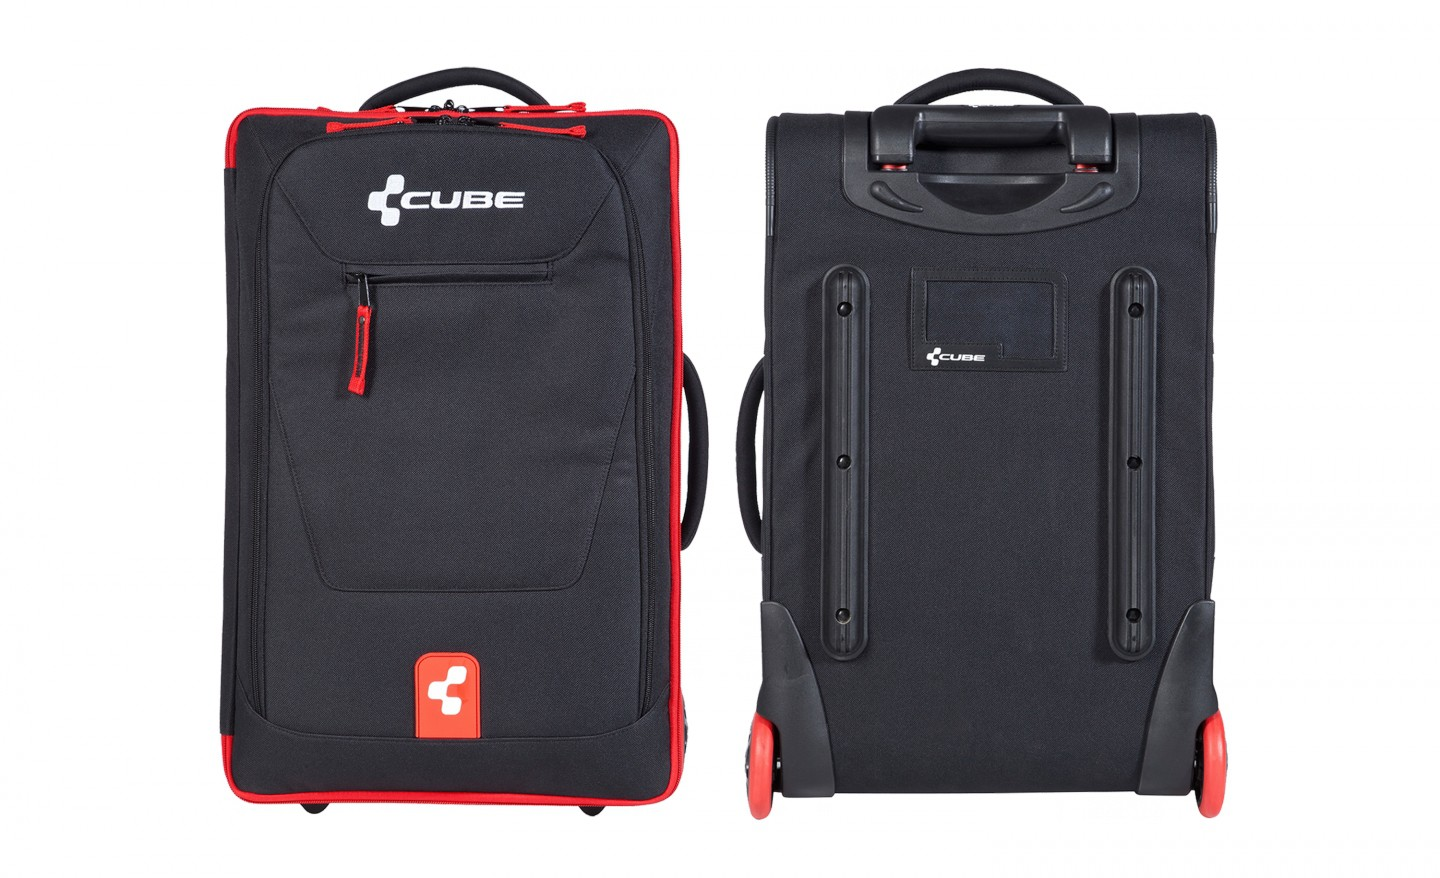 CUBE Inflight Trolley WTS 35